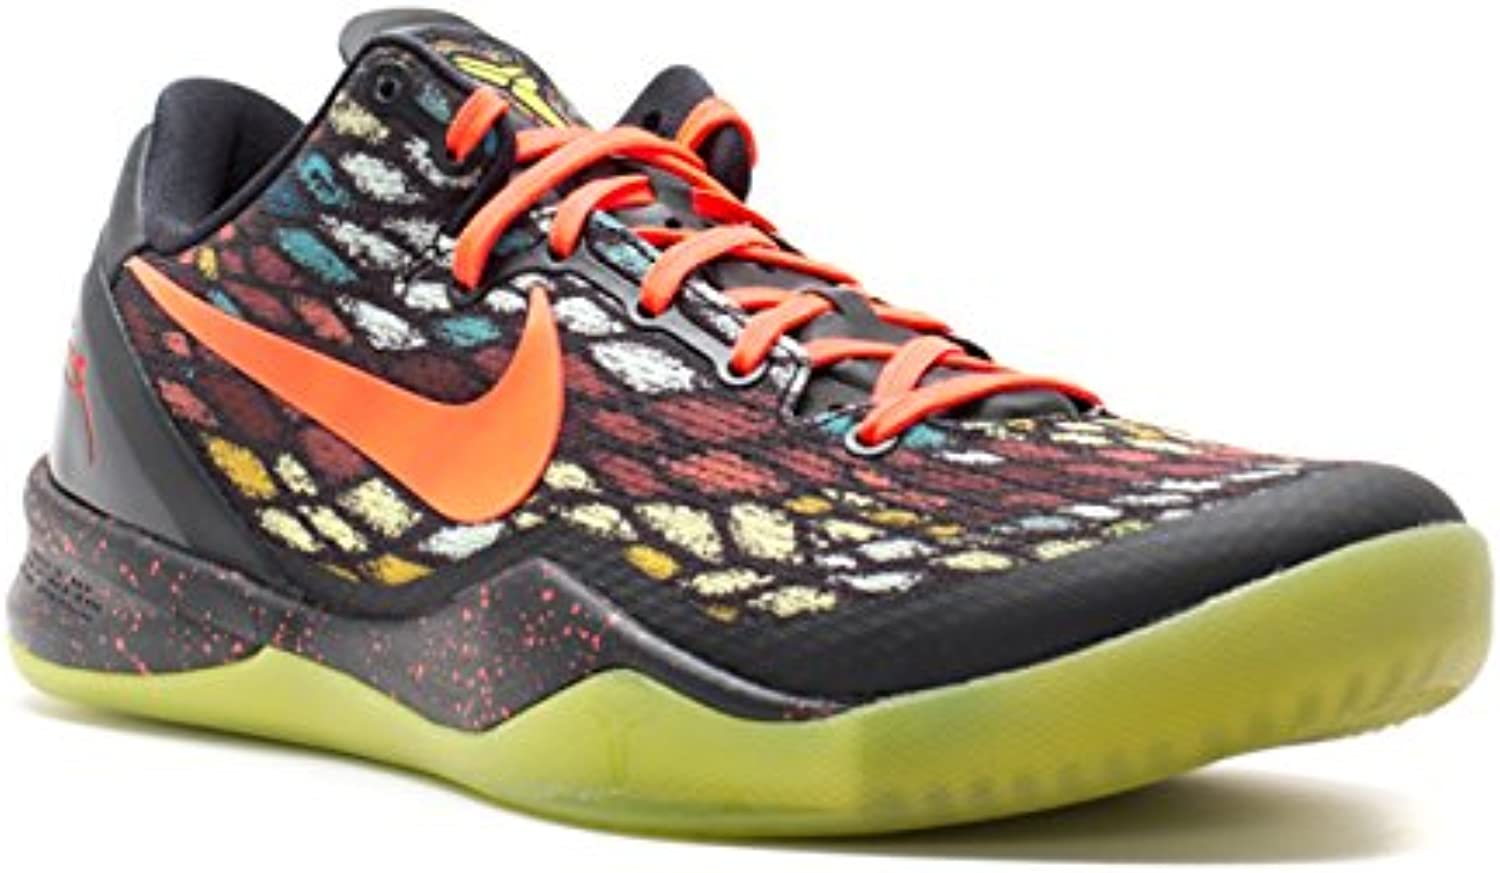 NIKE Kobe Black/Bright 8 System Christmas Black/Bright Kobe Crimson ...